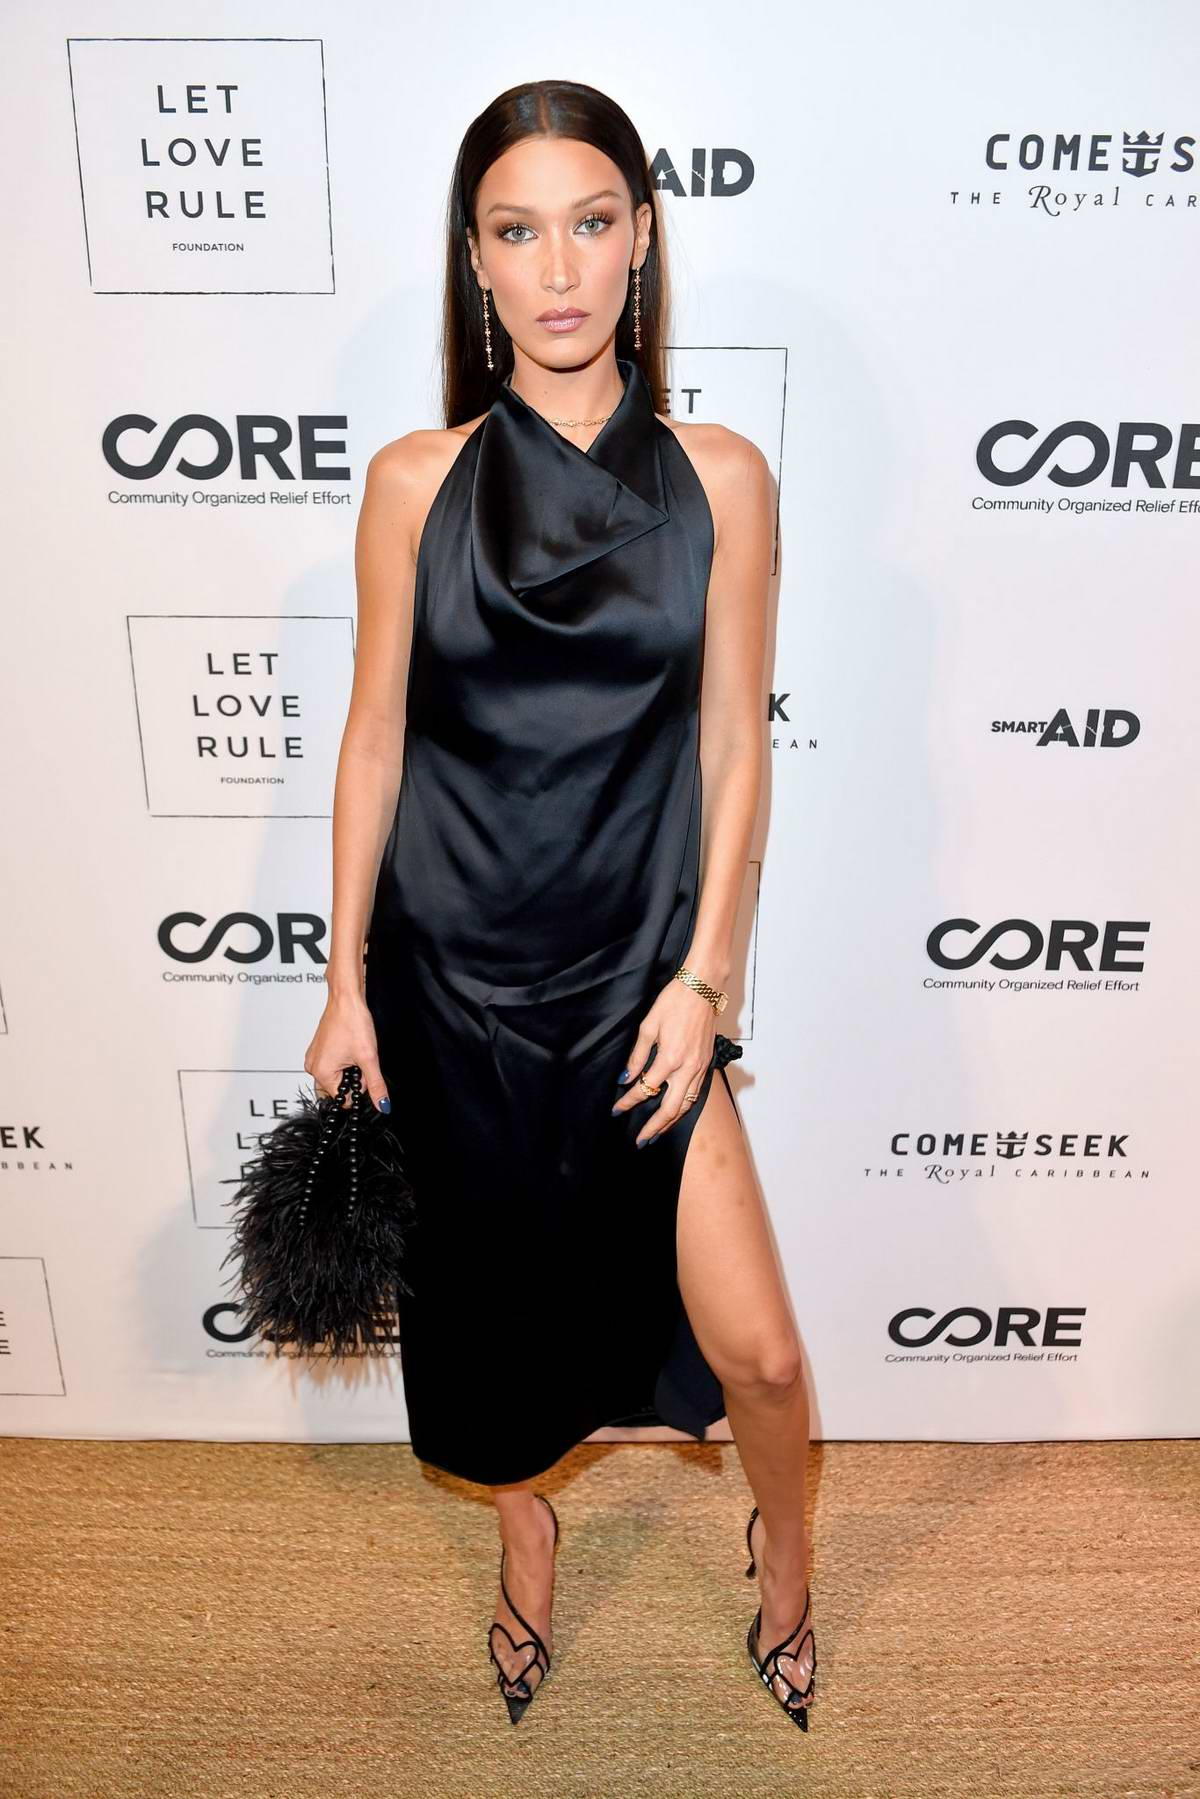 Bella Hadid attends the Core x Let Love Rule Benefit during Art Basel in Miami, Florida